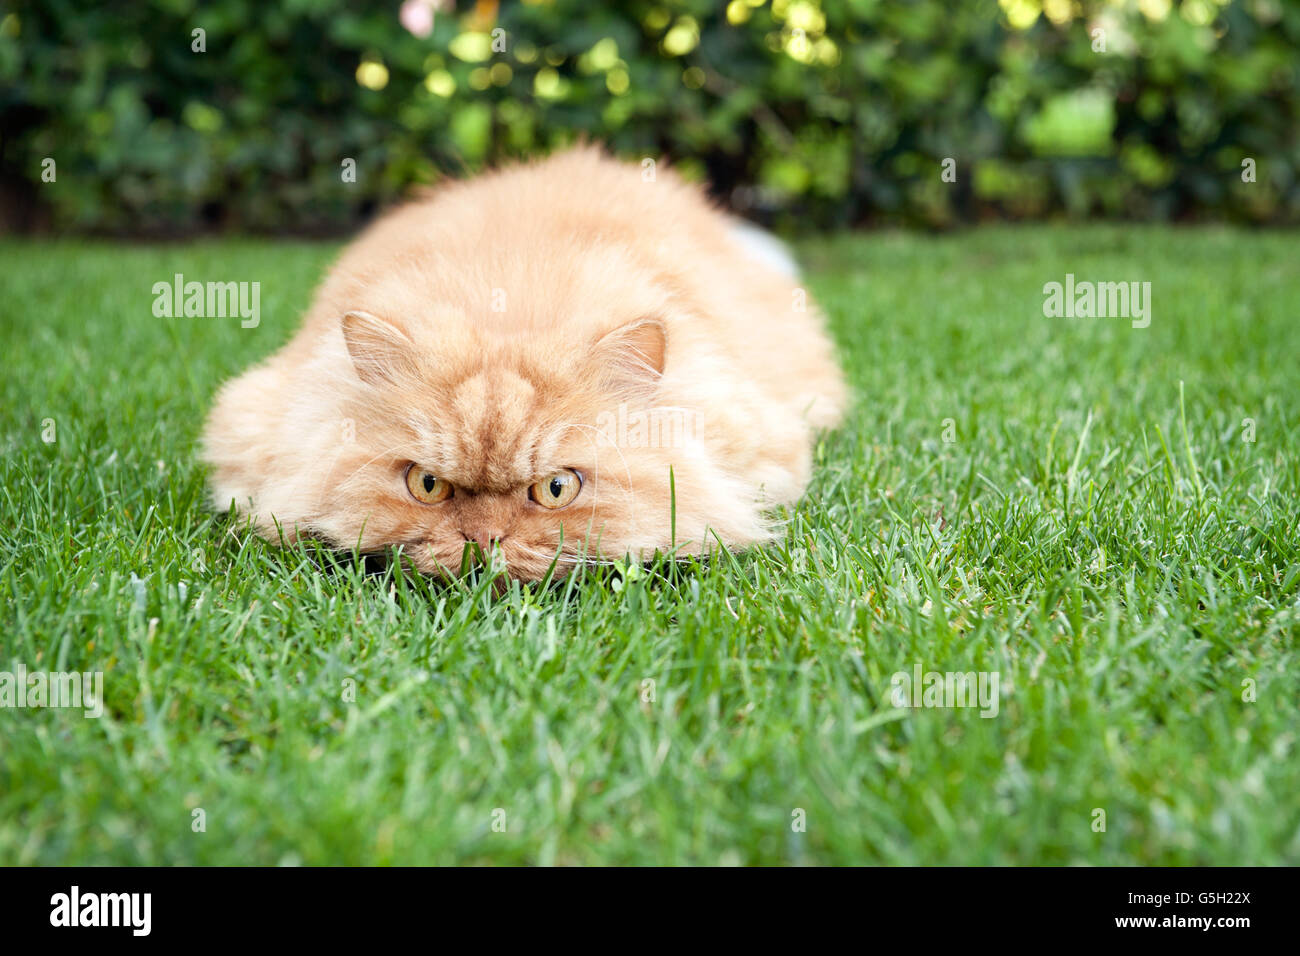 Persian cat hunting in the garden - Stock Image